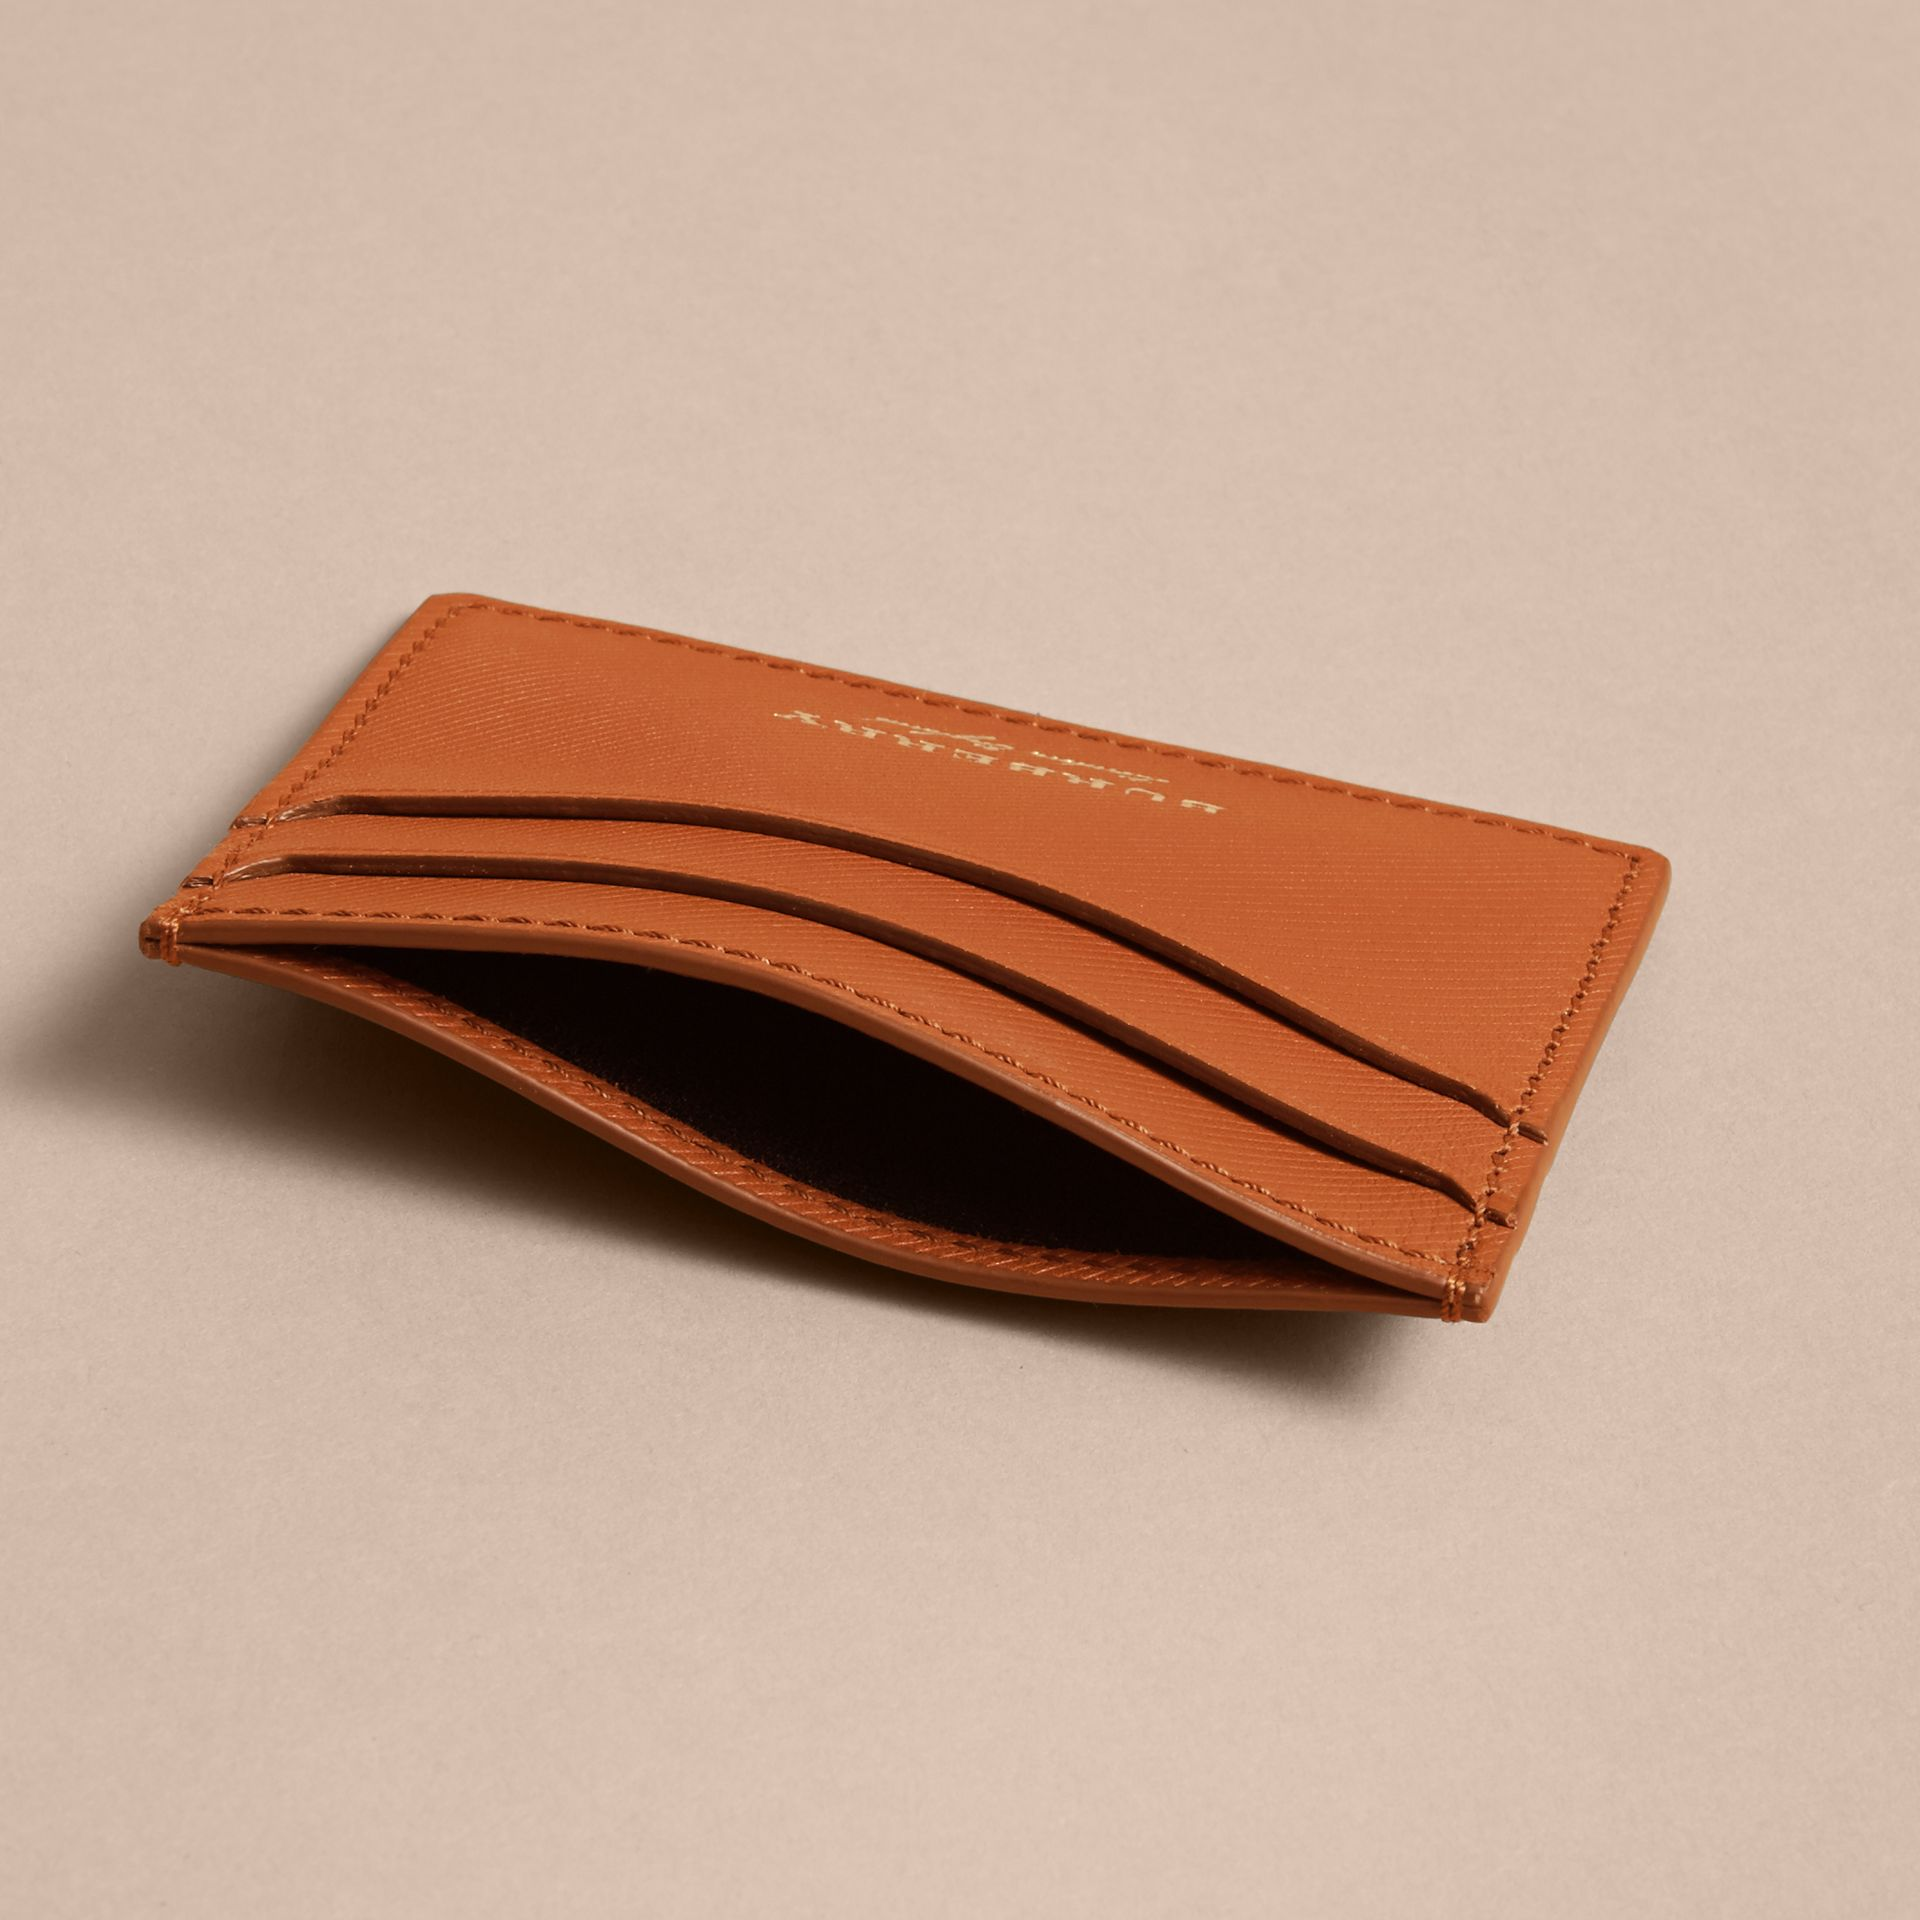 Trench Leather Card Case in Tan - Men | Burberry - gallery image 4